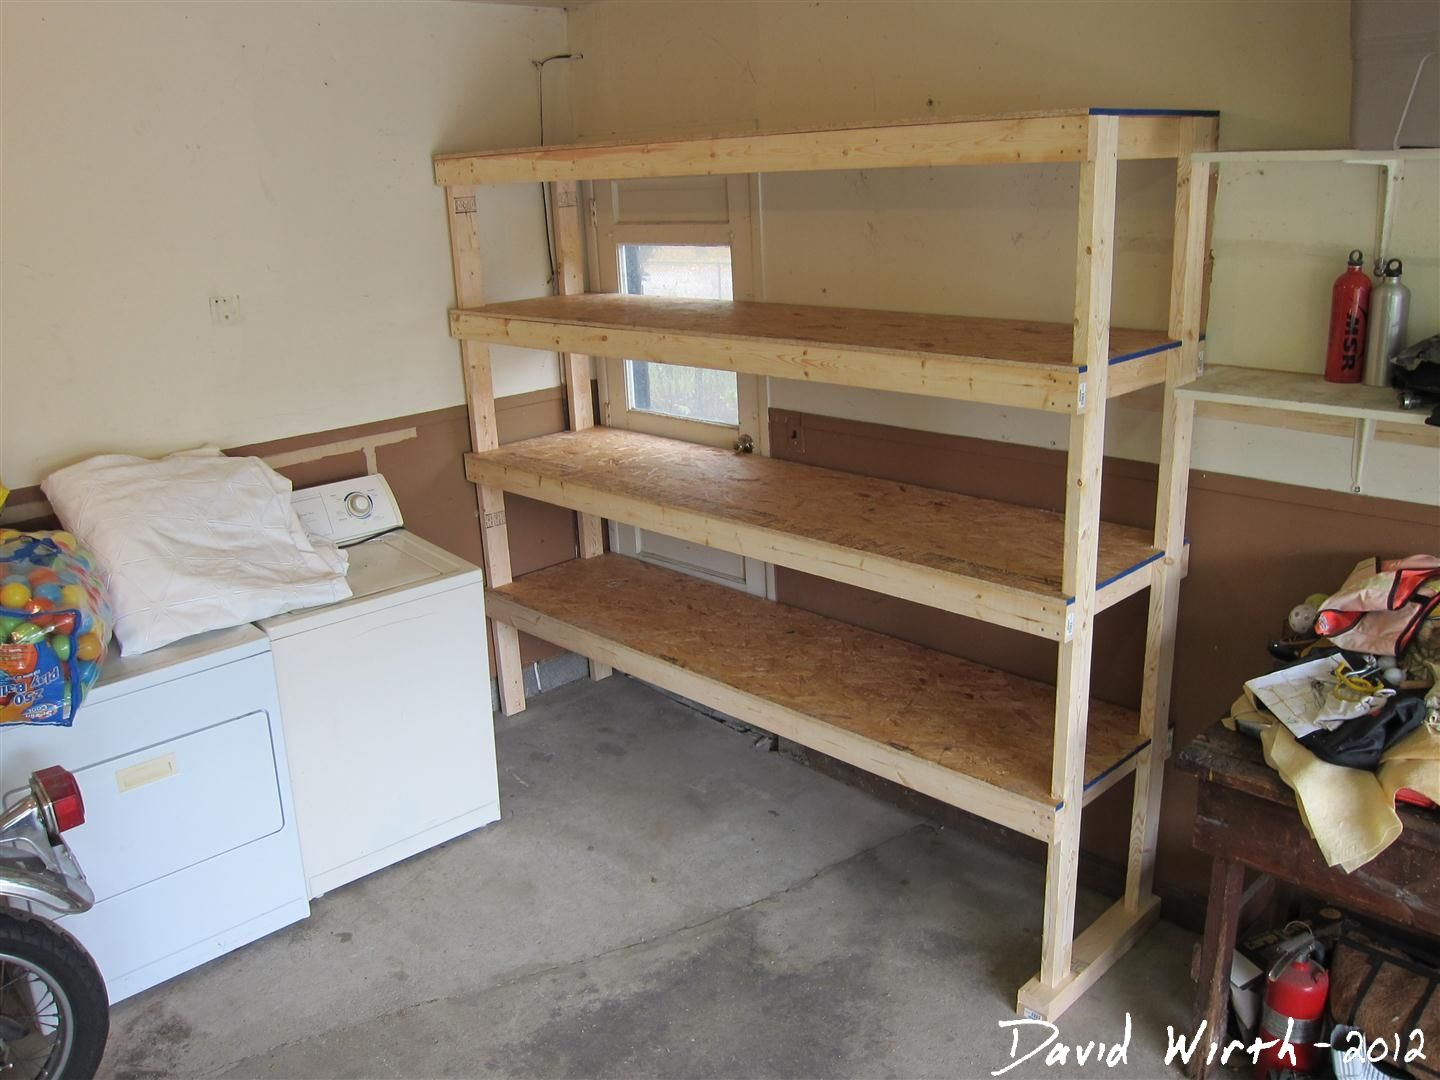 Heavy duty 2x3 and 2x4 storage units with plywood shelves